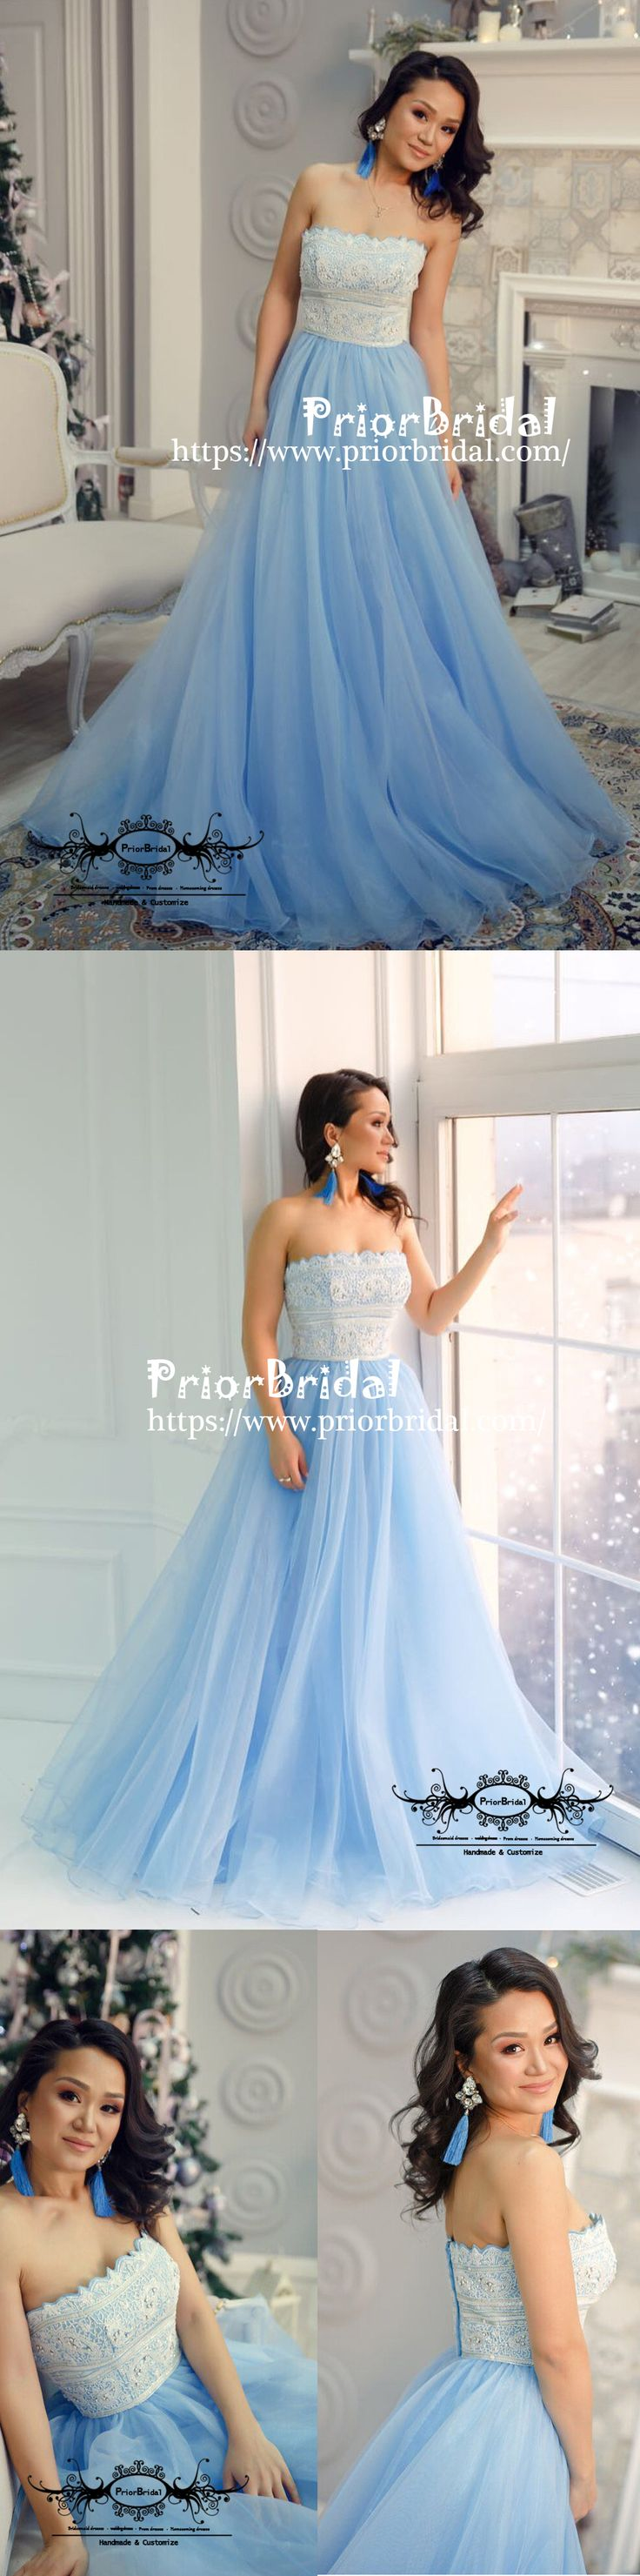 164 best Prom Dresses images on Pinterest